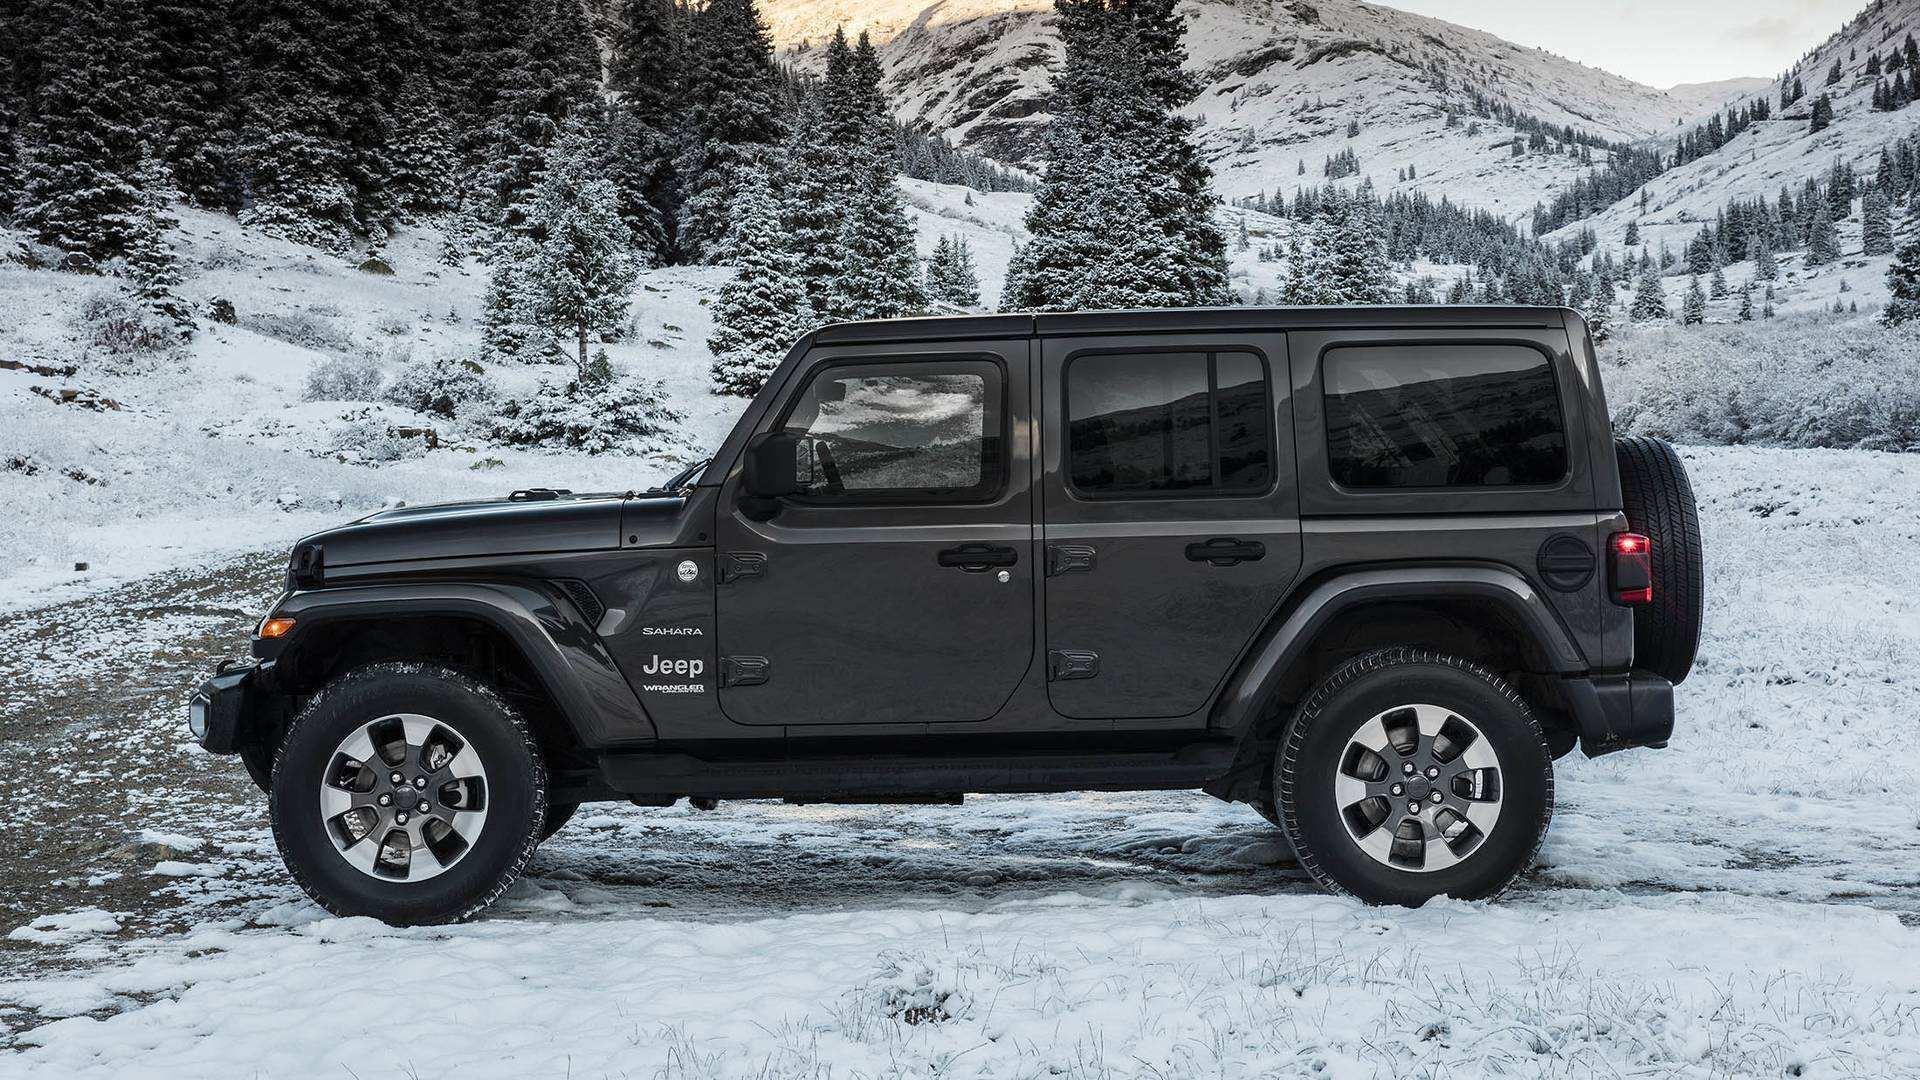 92 Great 2020 Jeep Rubicon Review for 2020 Jeep Rubicon